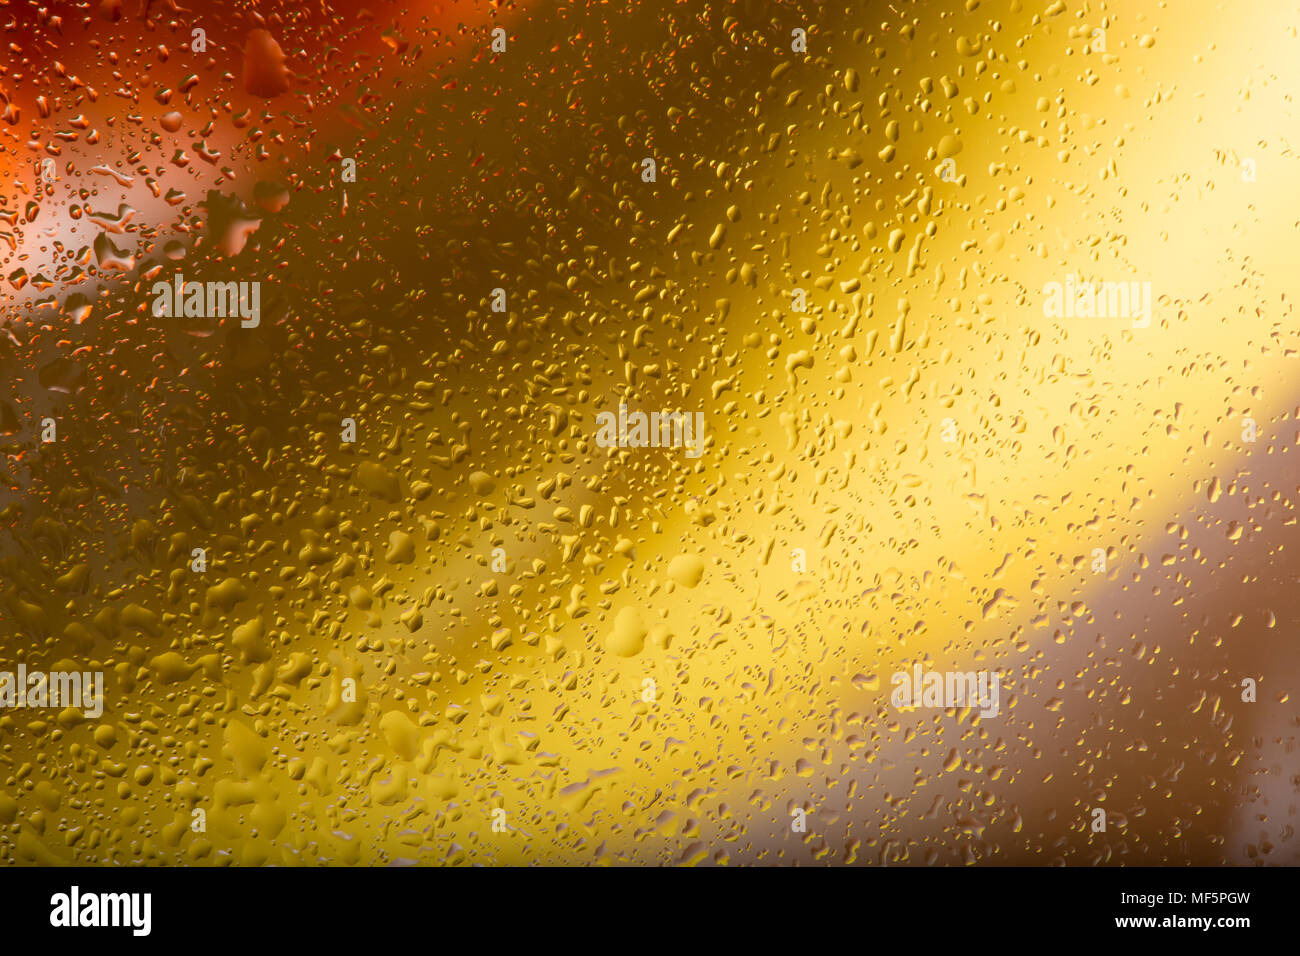 Colourful landscape shot: banana & orange fresh fruit behind obscured, wet glass. Interesting screen saver design. Abstract / background capture. - Stock Image